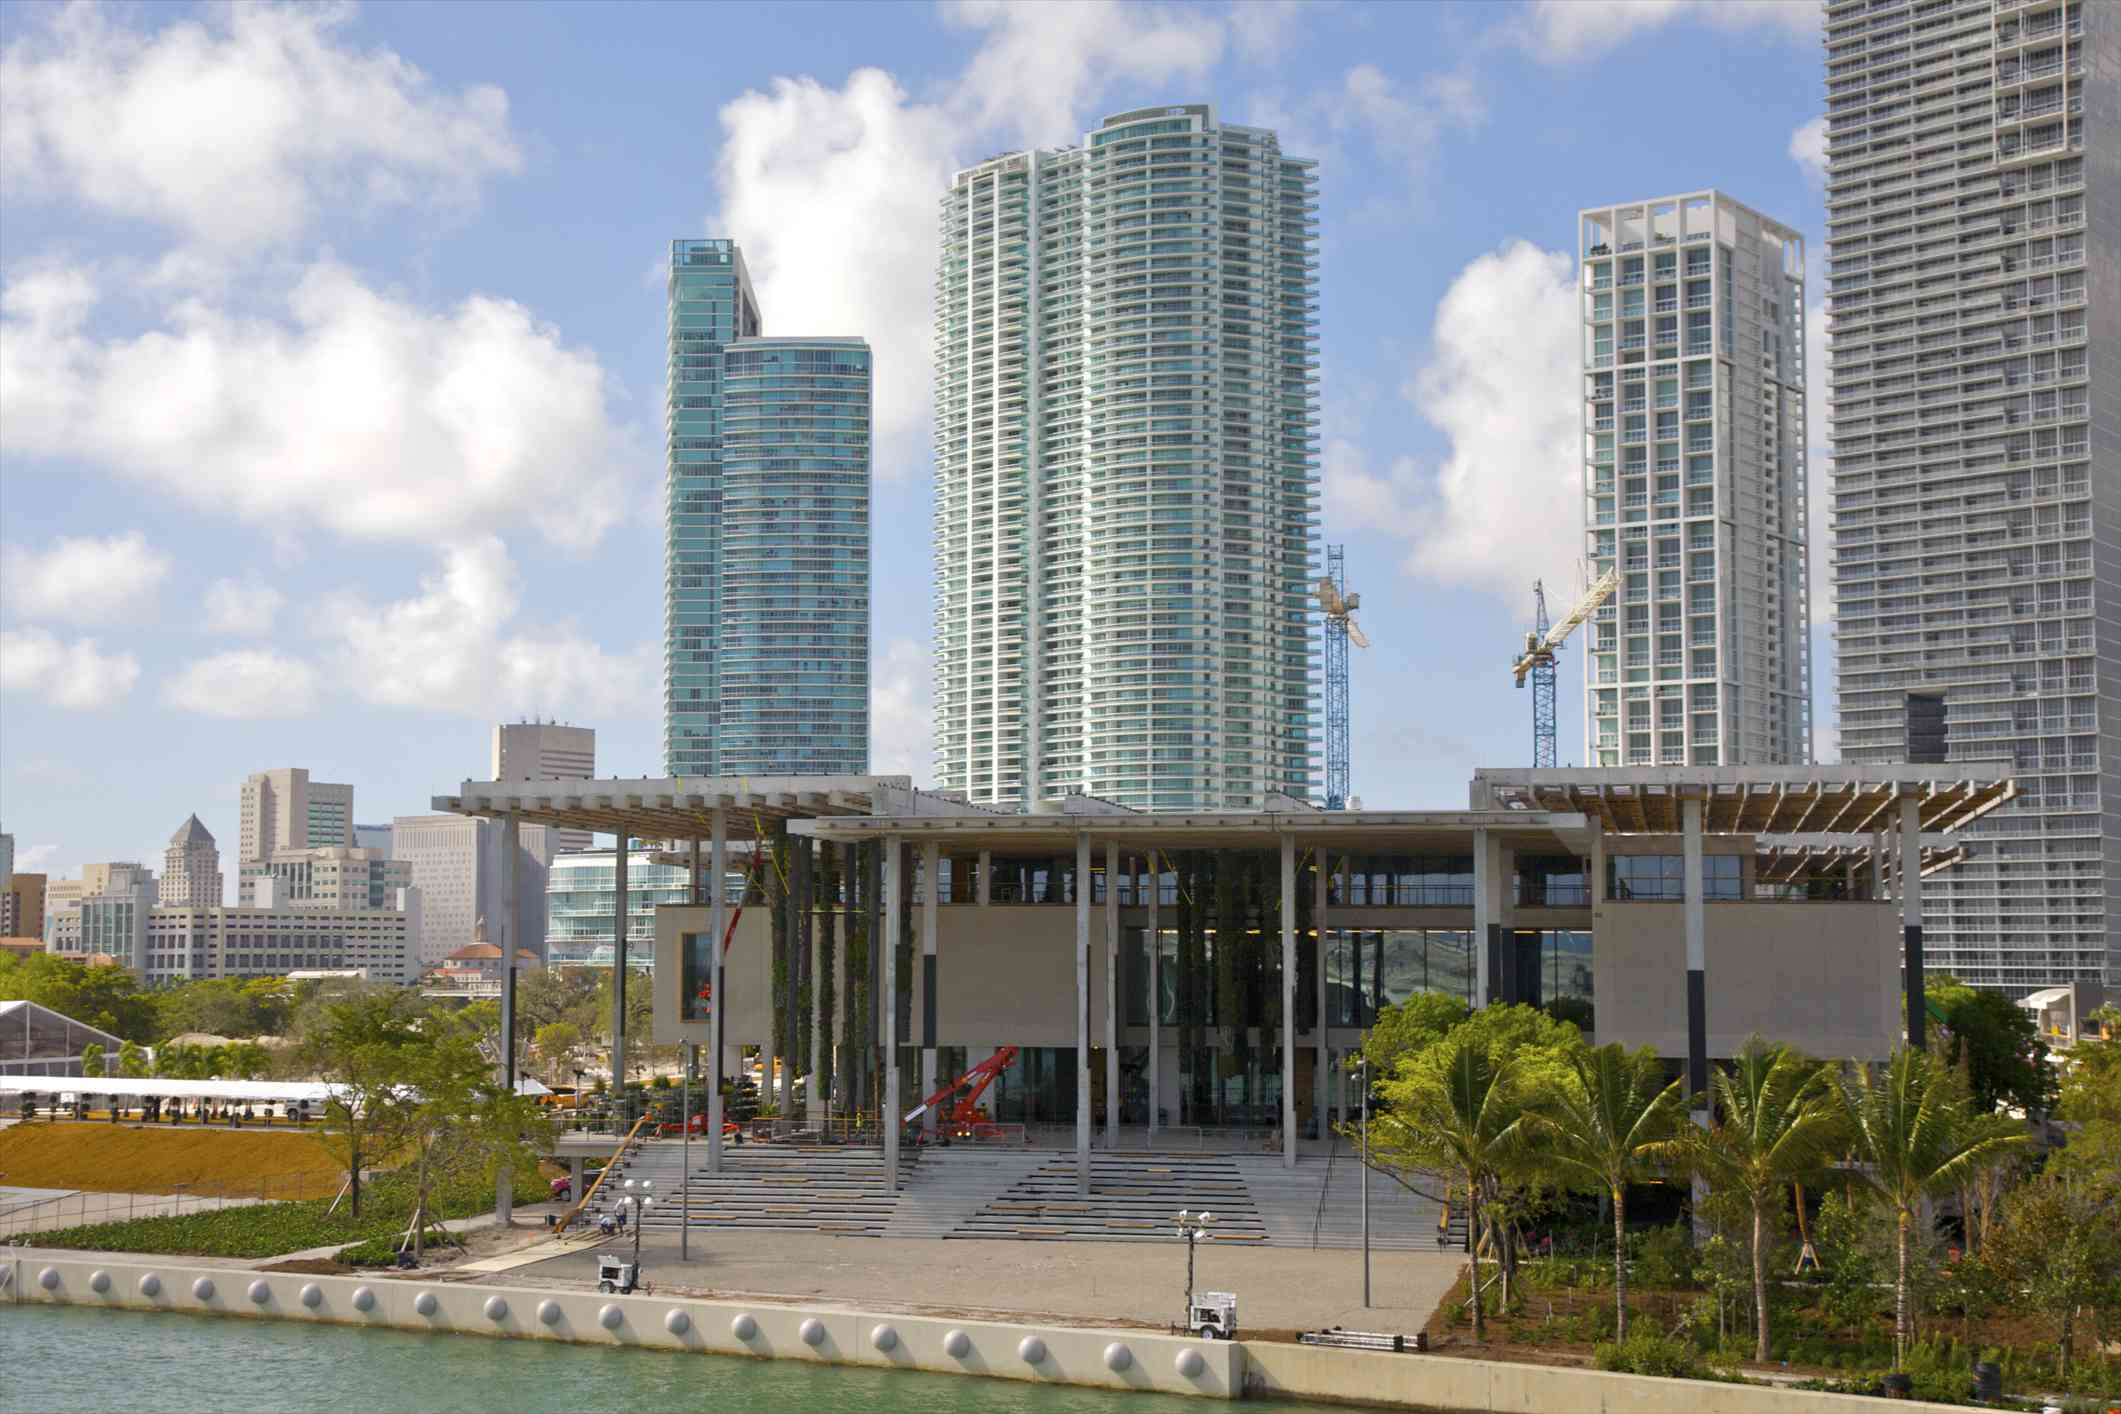 Perez Art Museum with Miami skyscrapers in background